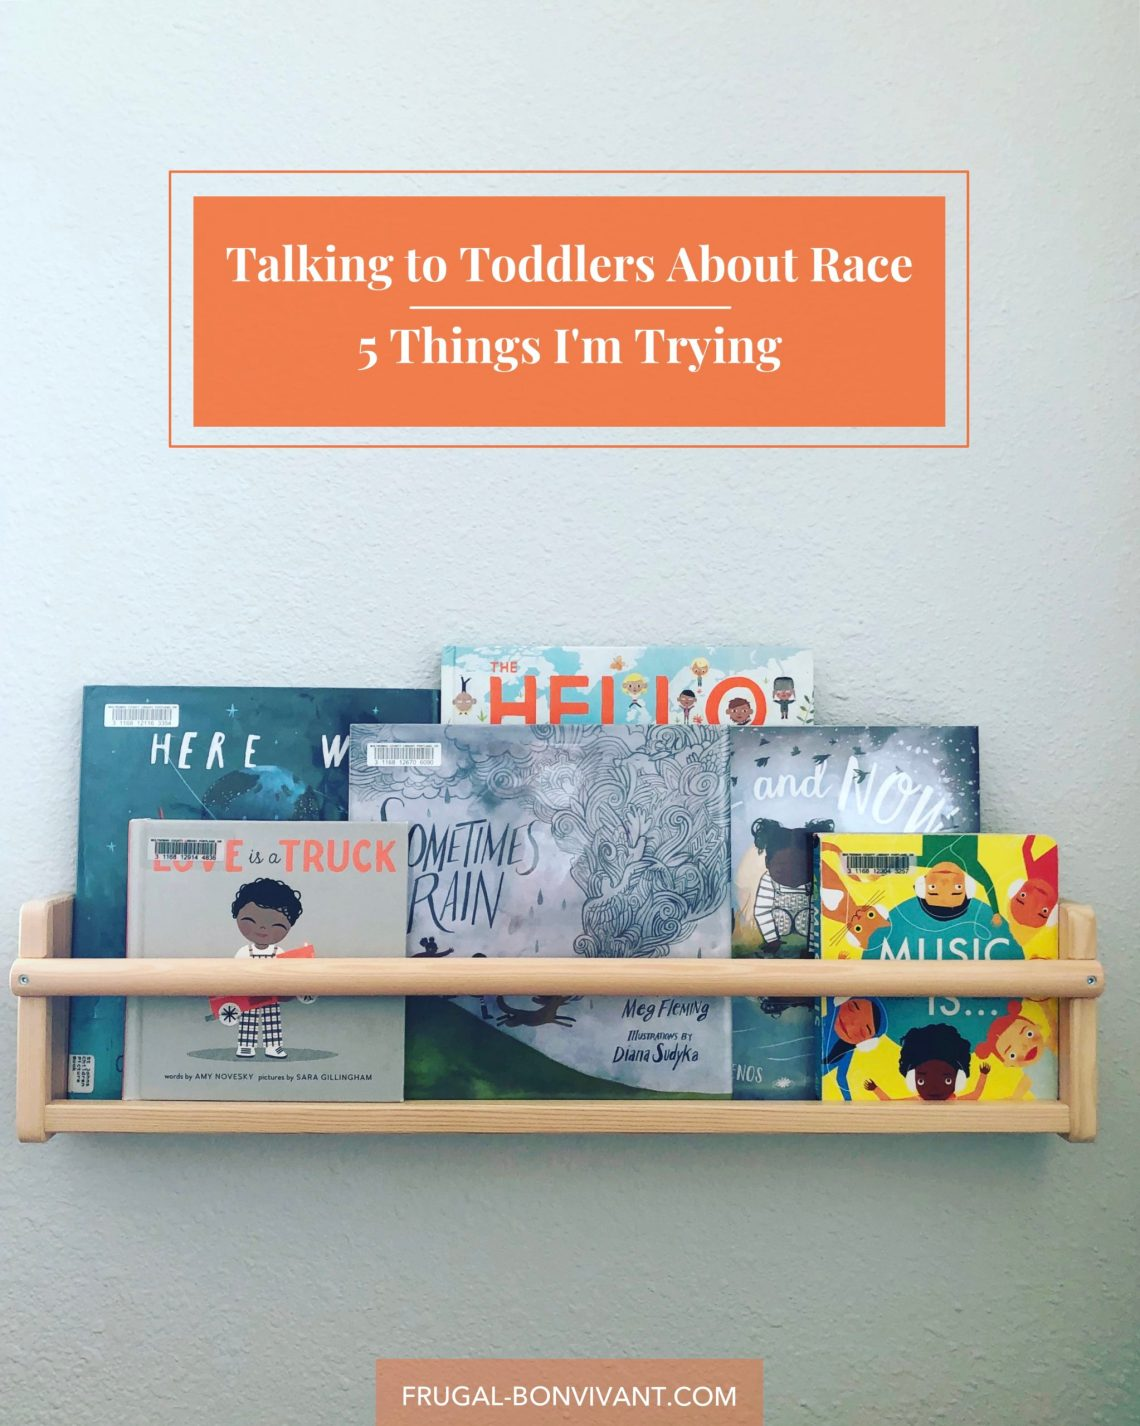 Talking to Toddlers about Race and Racism - 5 Things I'm Trying